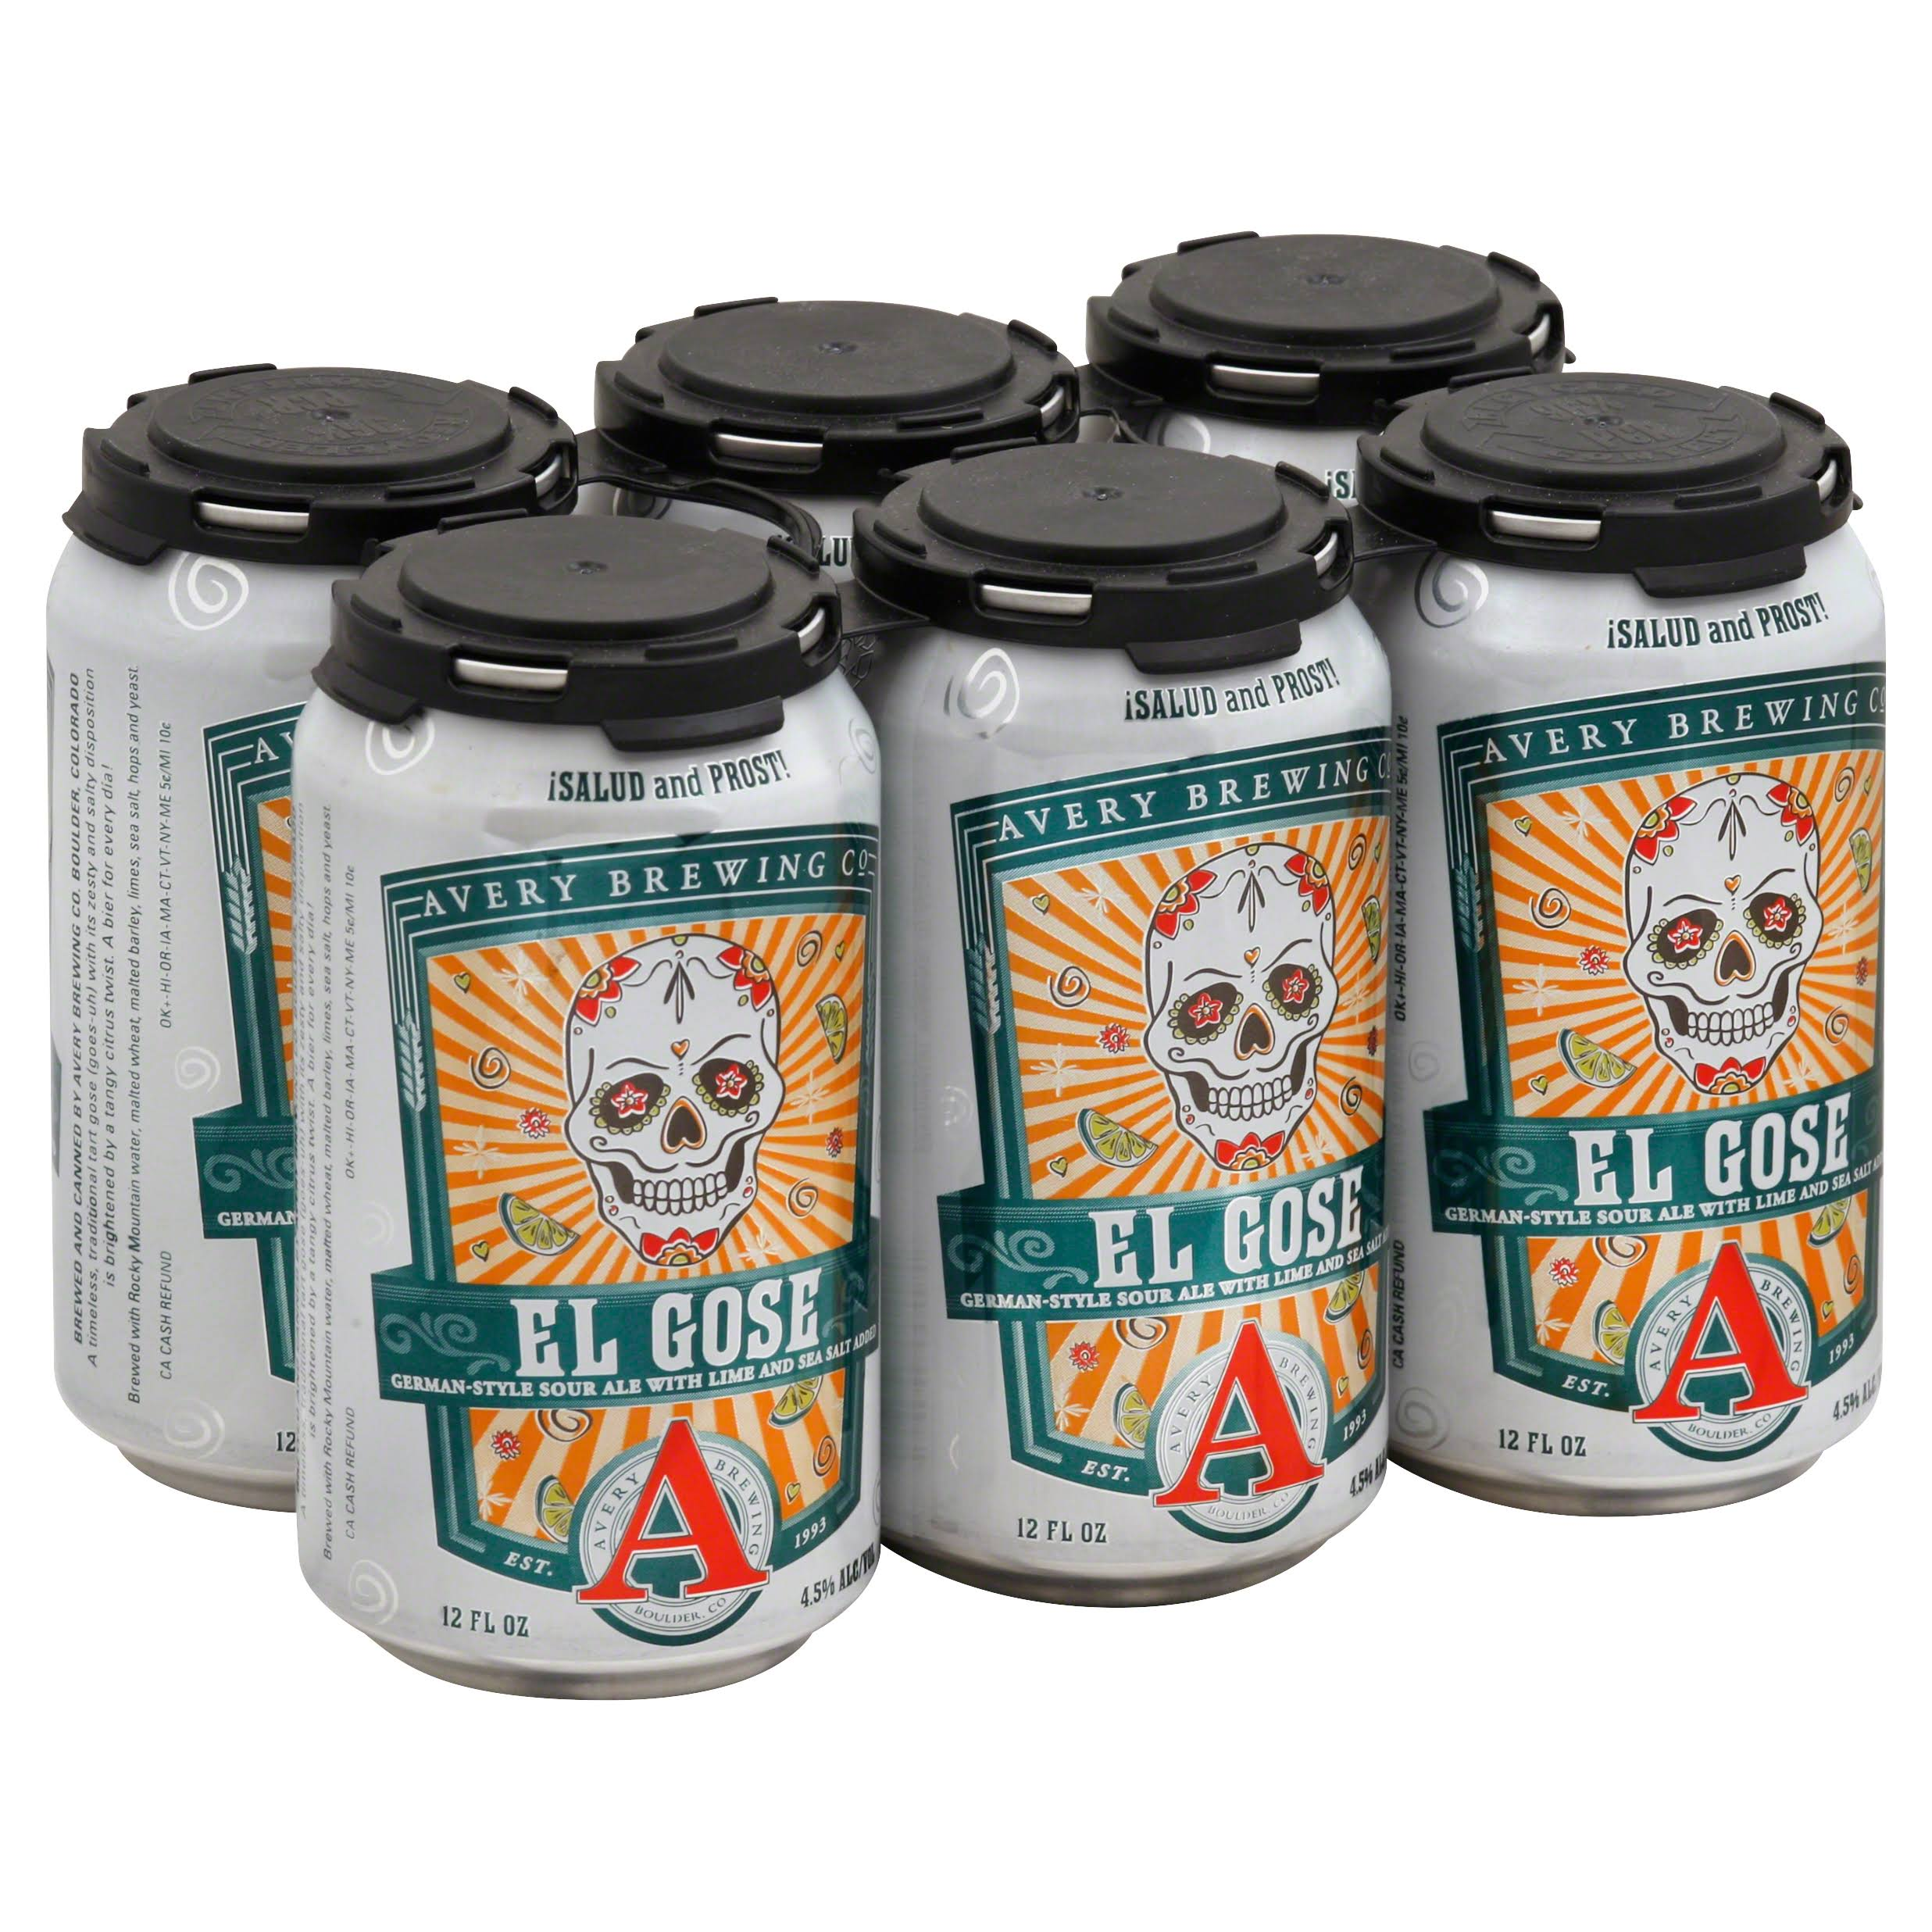 Avery Brewing Beer, El Gose - 6 pack, 12 fl oz cans